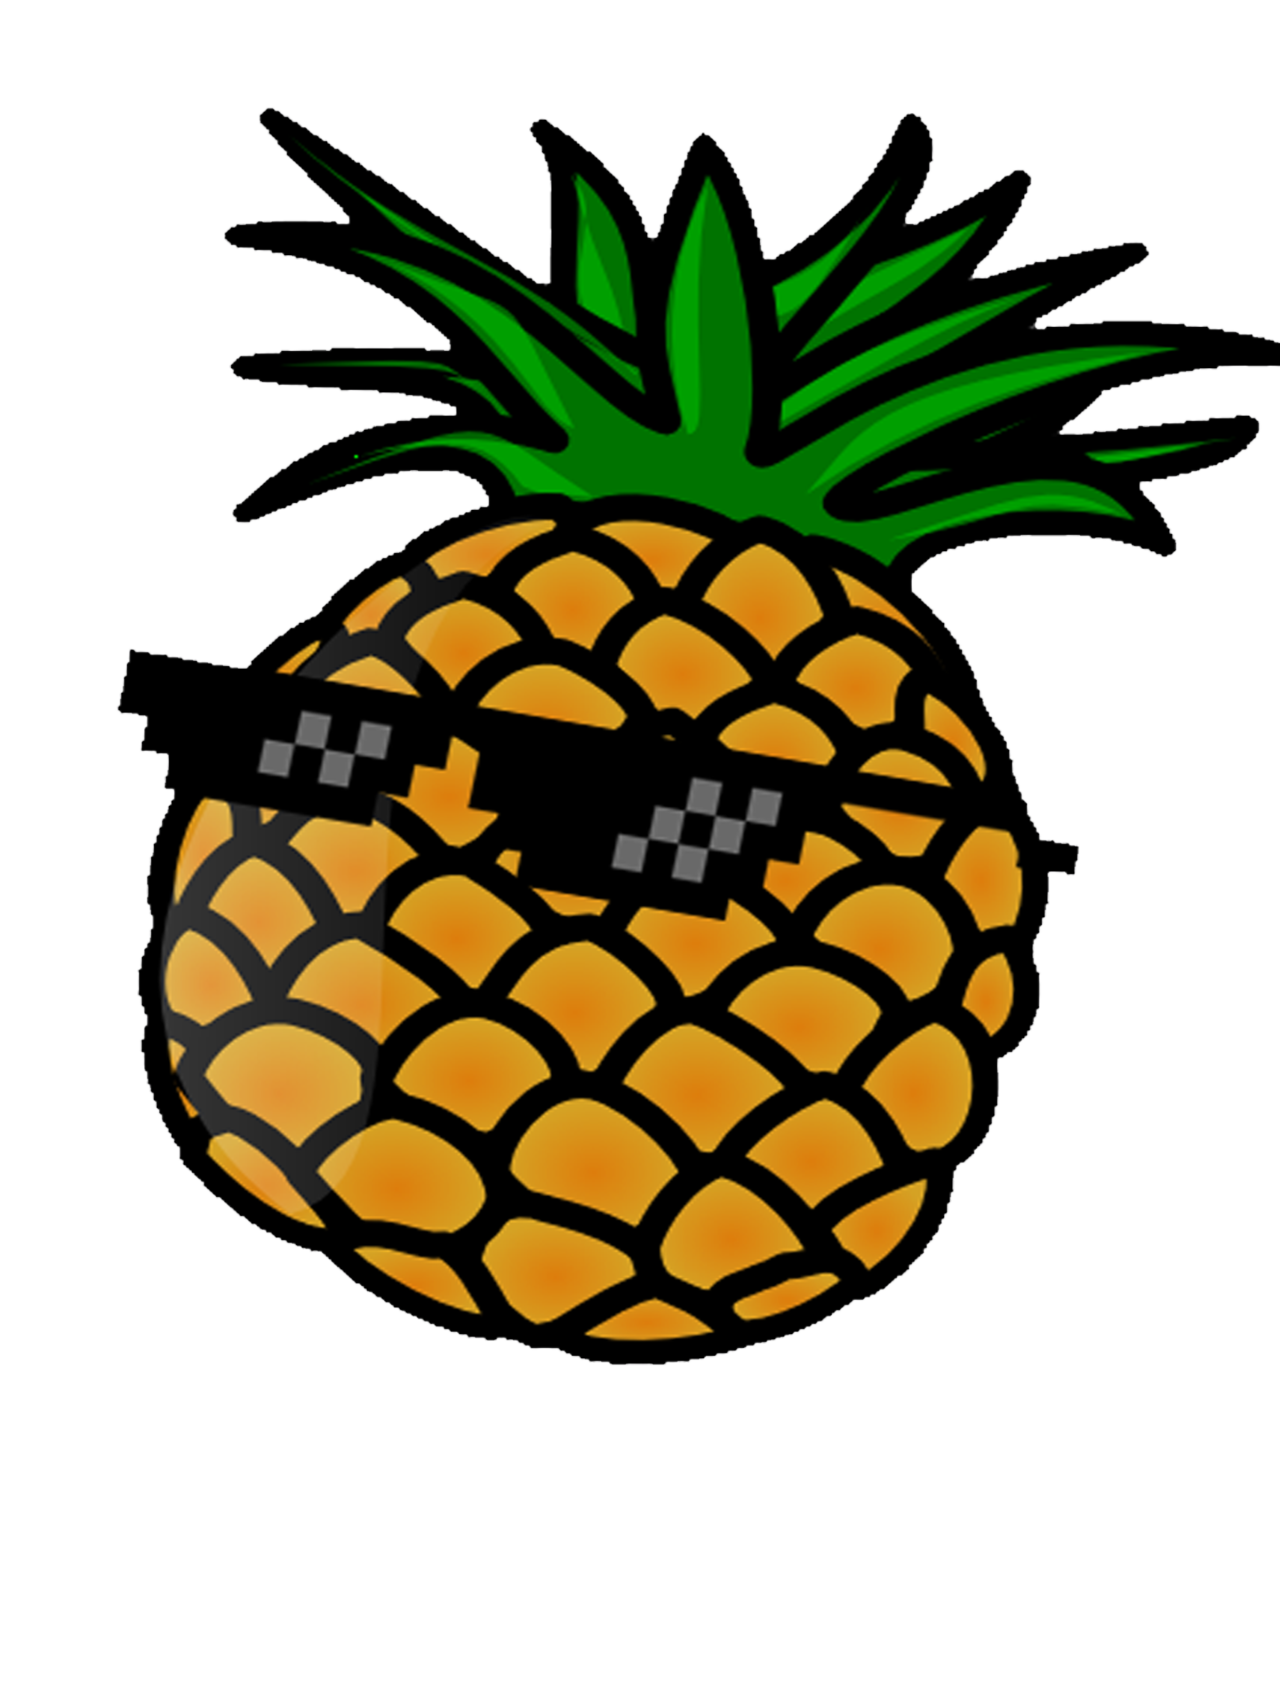 Clipart sunglasses pineapple. Emojipop pineapples are cool